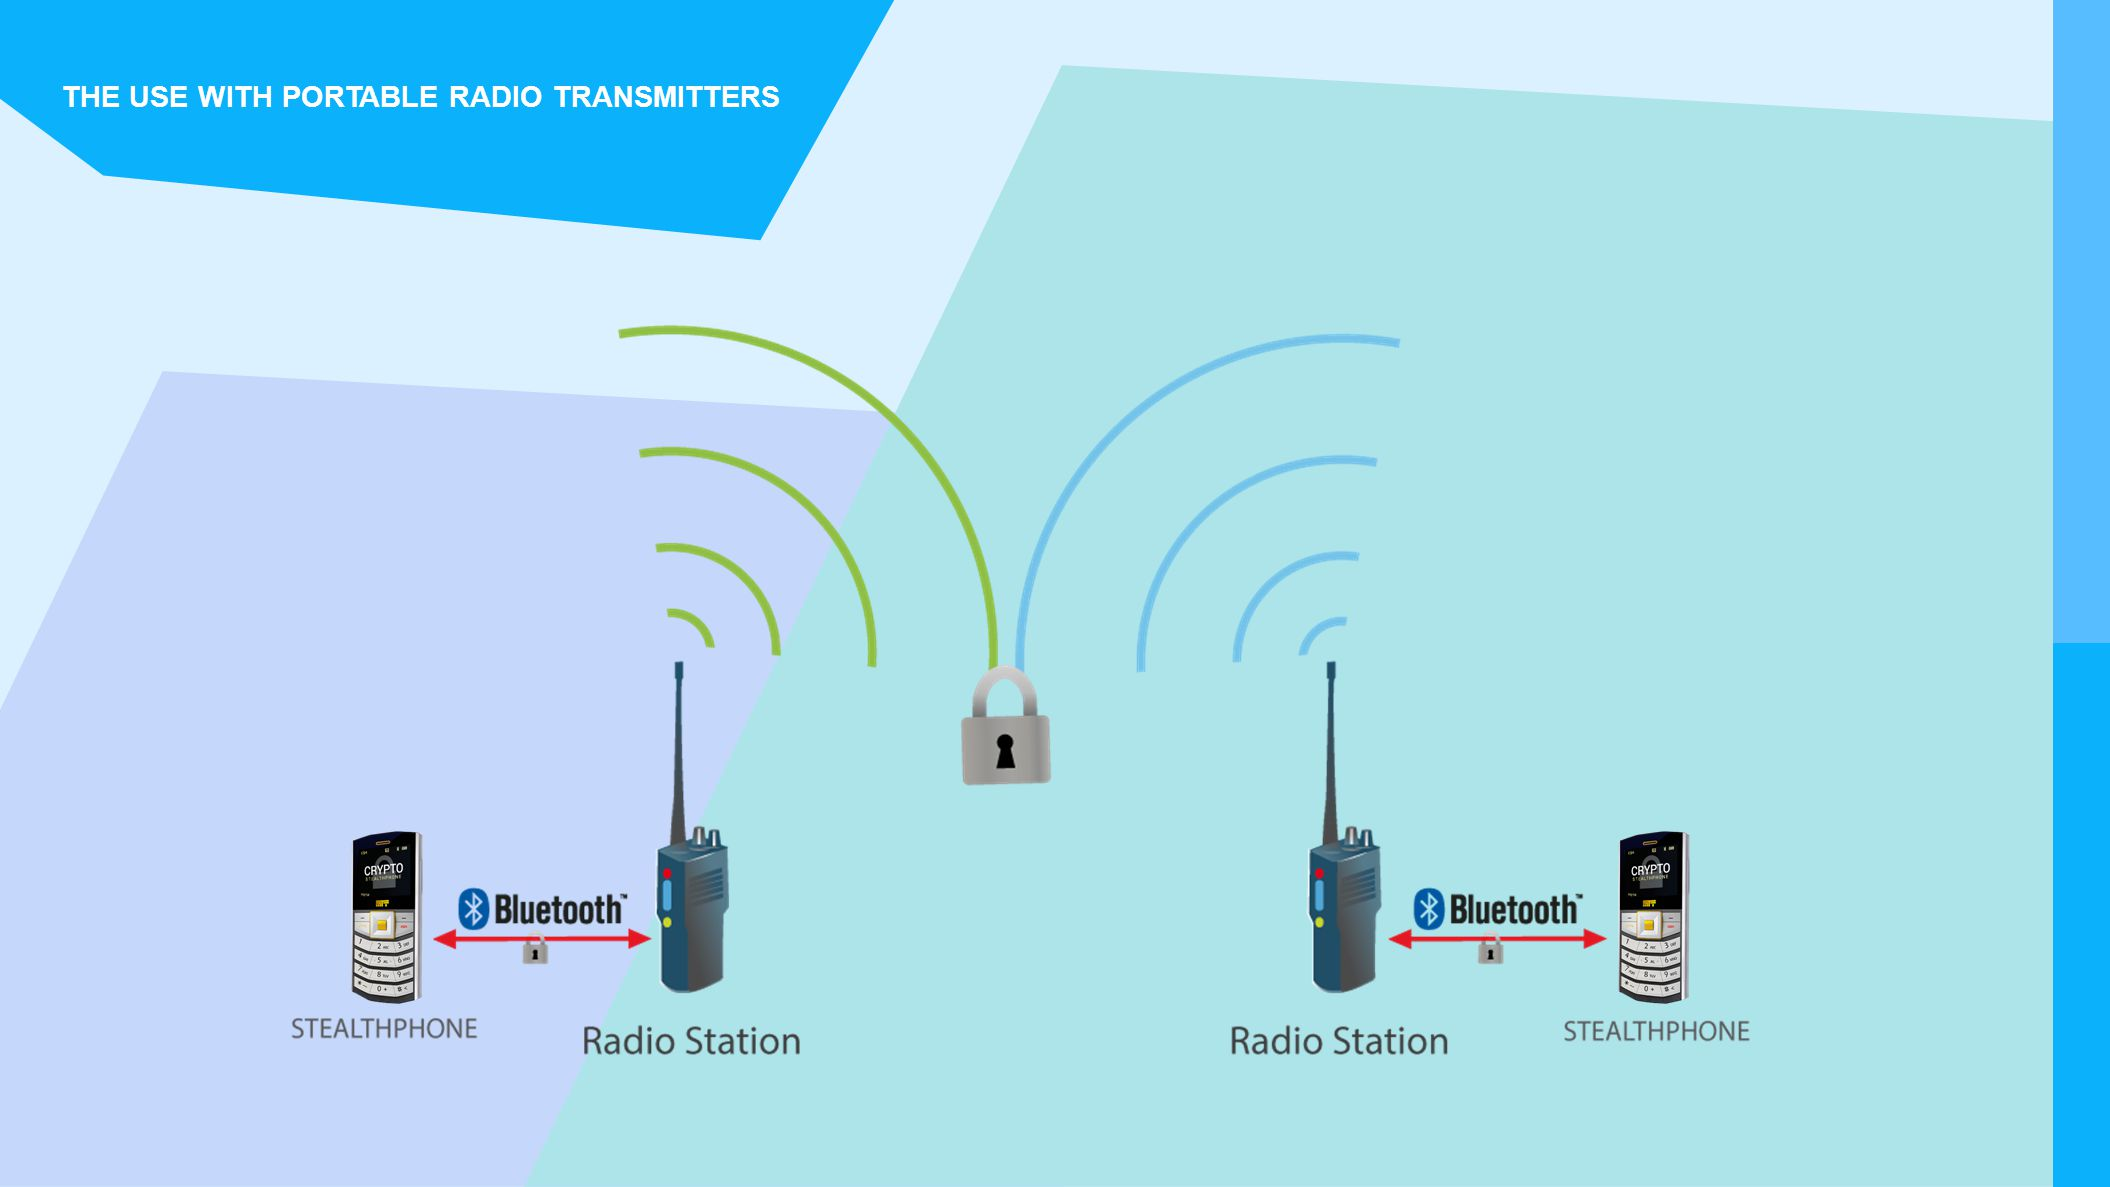 THE USE WITH PORTABLE RADIO TRANSMITTERS